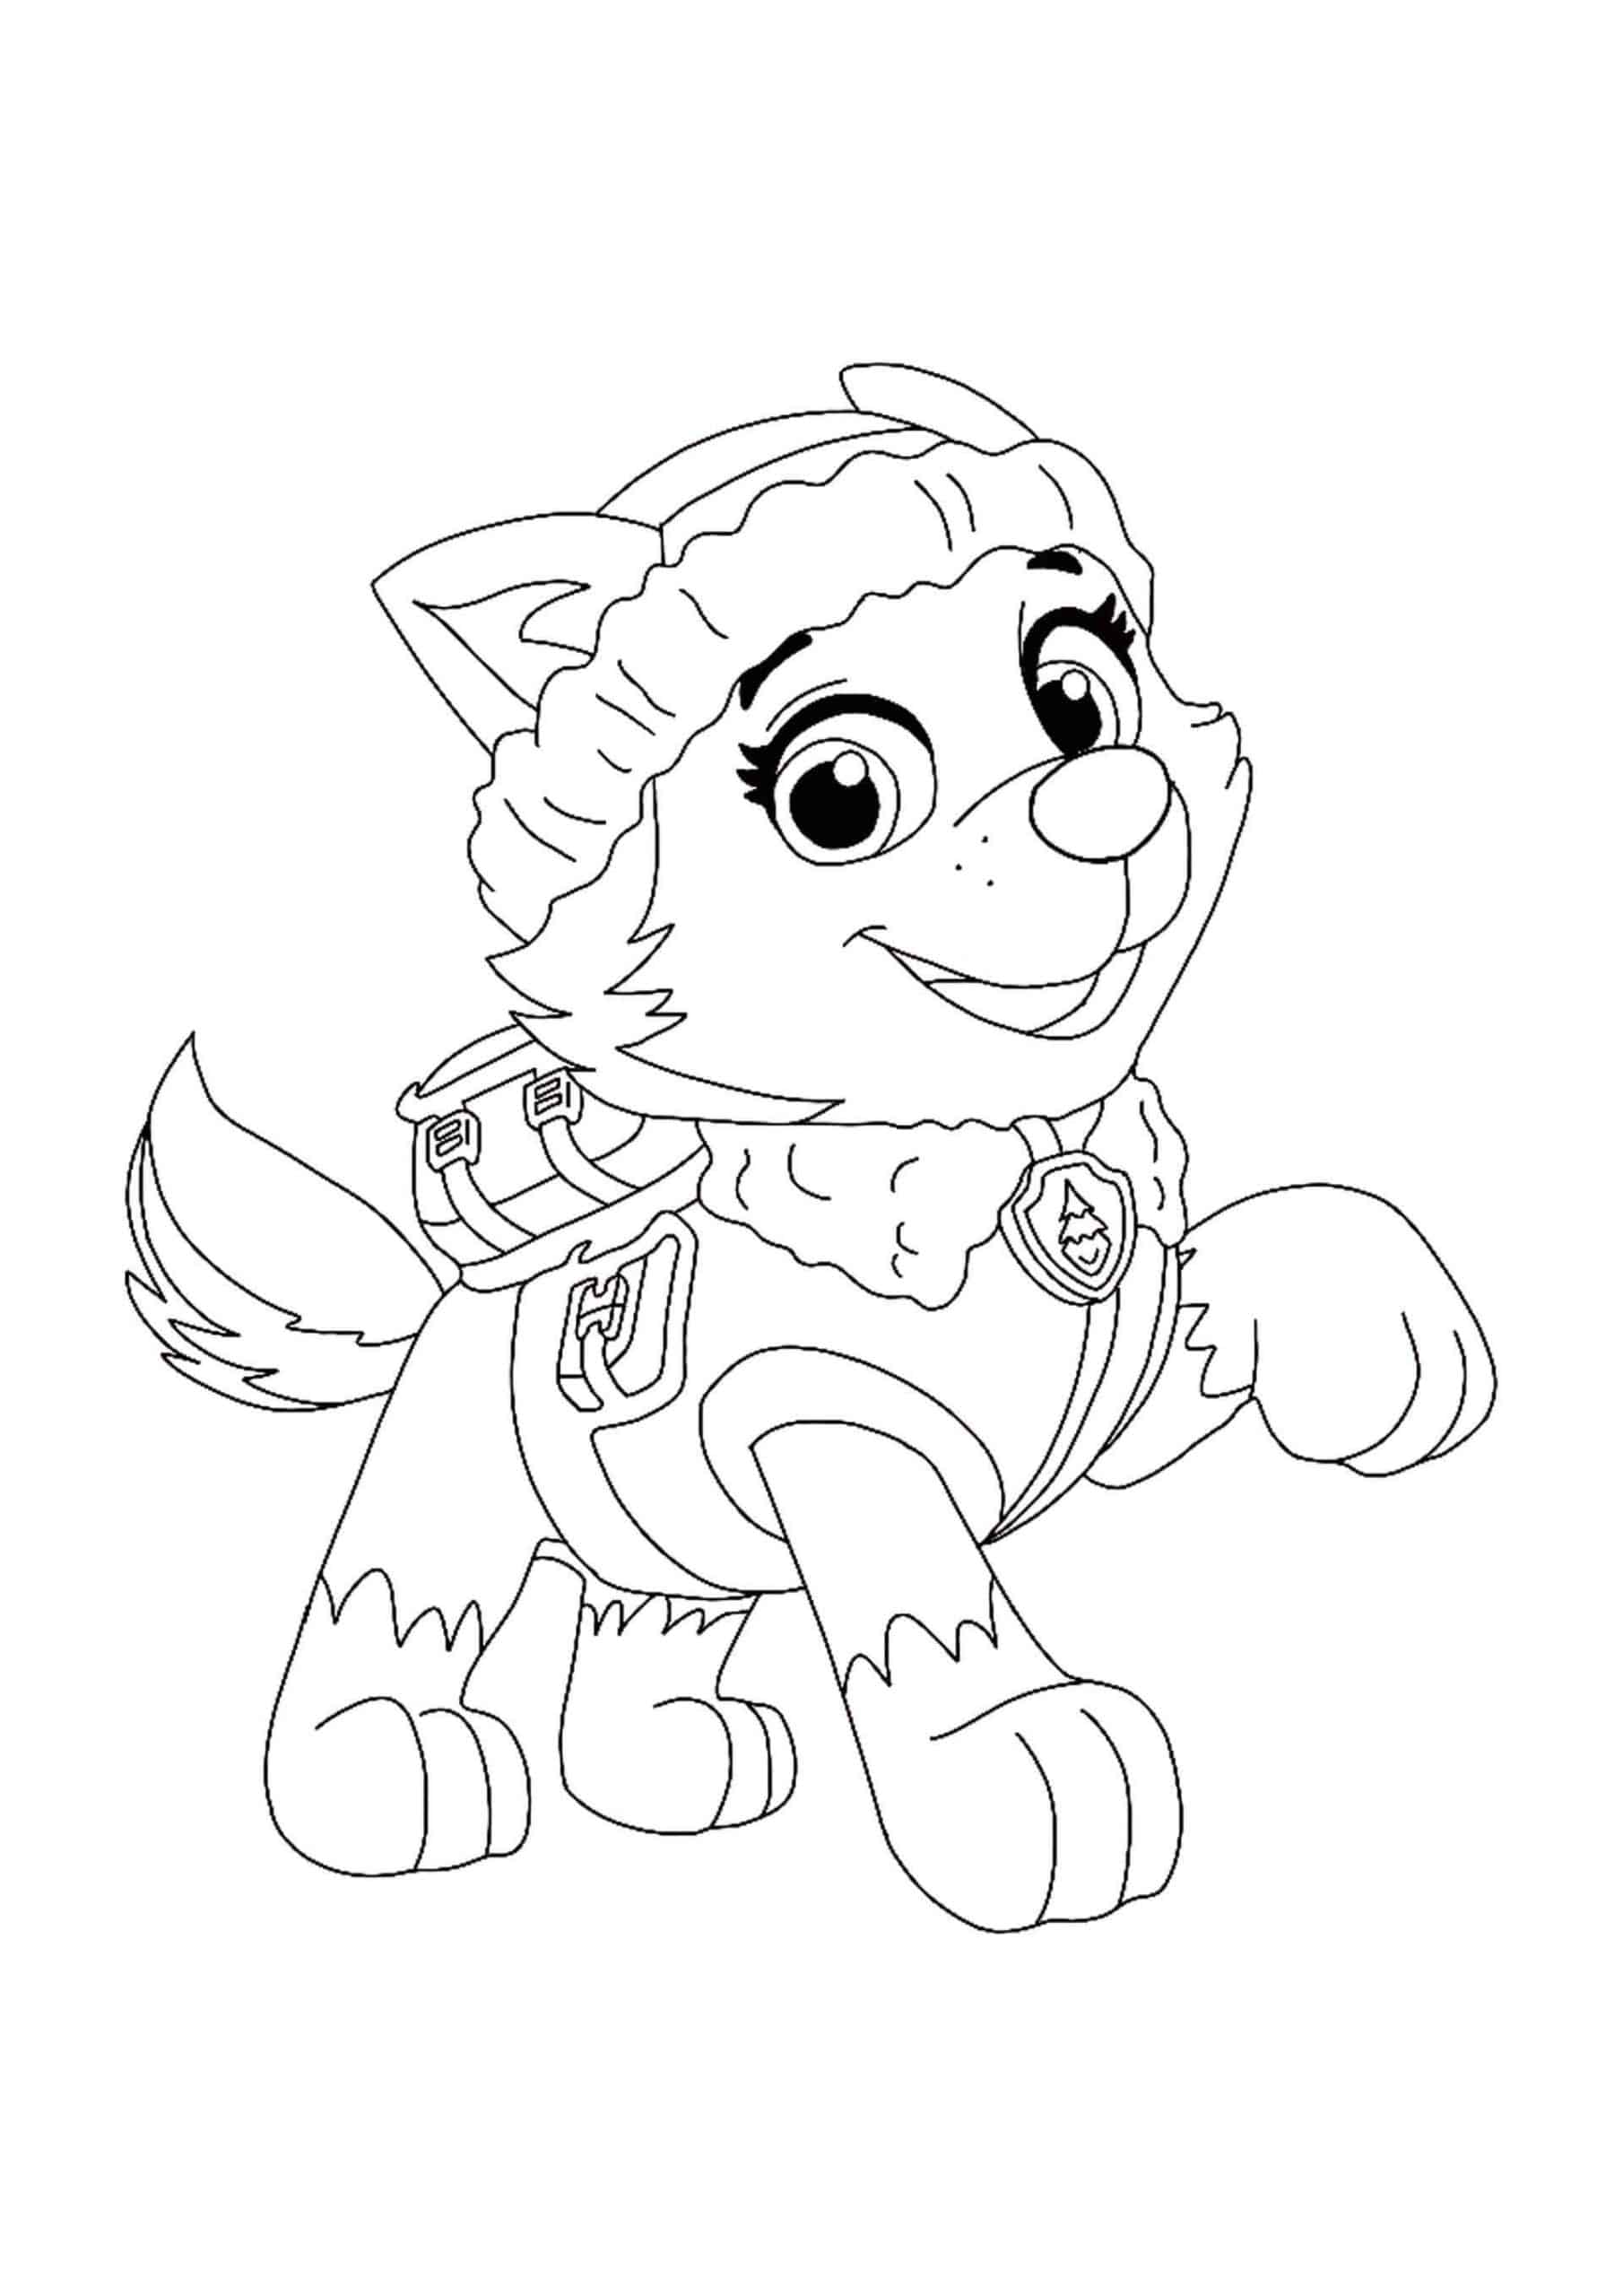 everest paw patrol coloring mighty pups paw patrol everest coloring pages printable paw patrol coloring everest